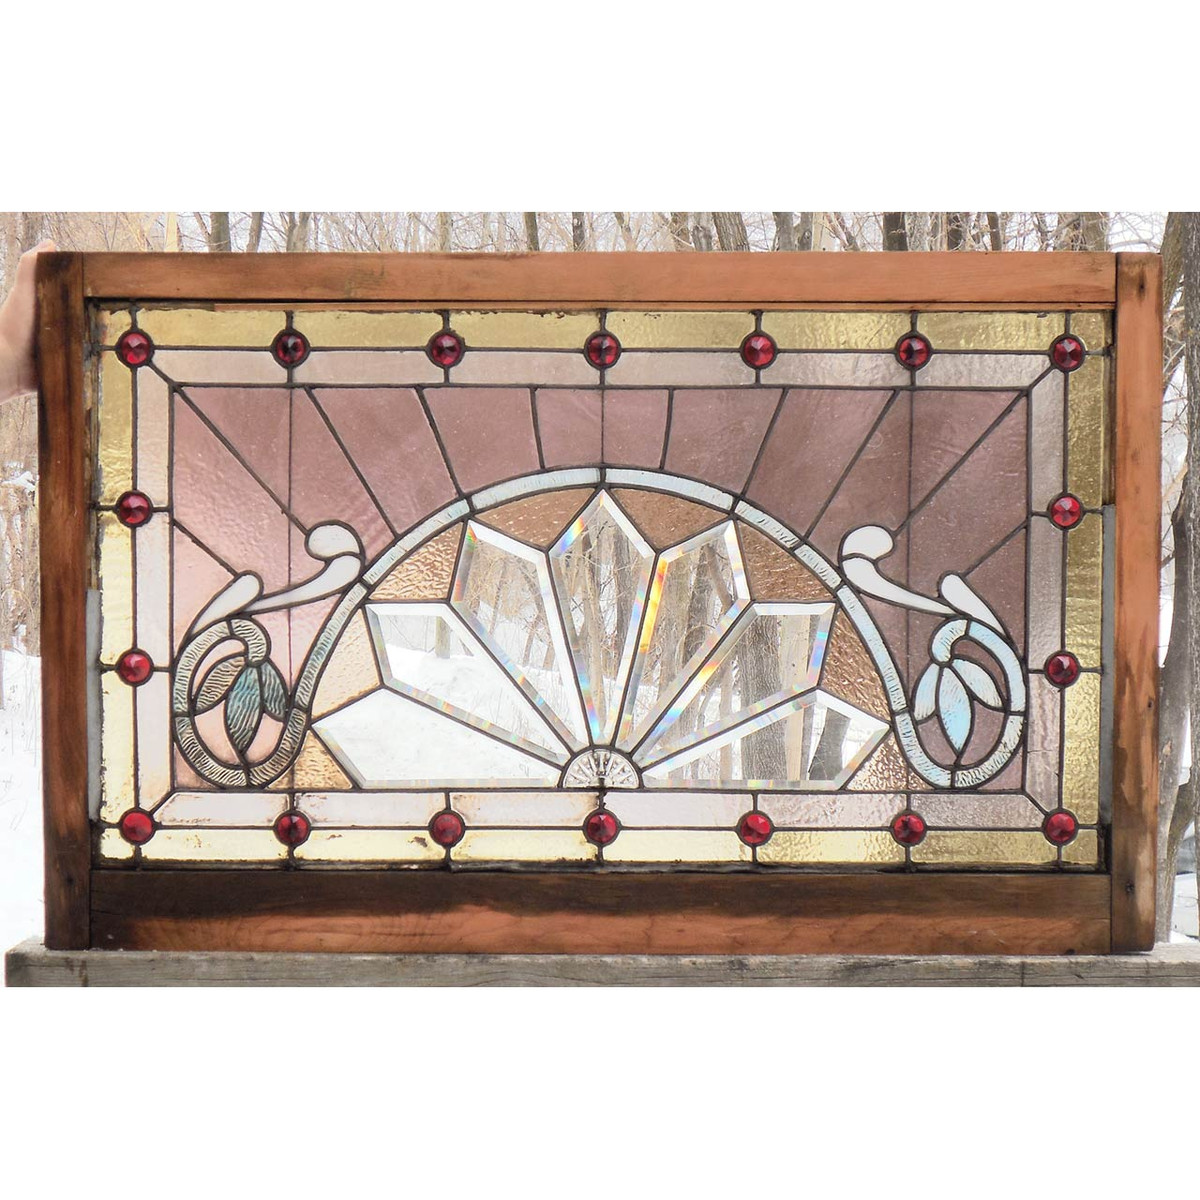 G15007 - Antique Late Victorian Stained and Beveled Glass Window